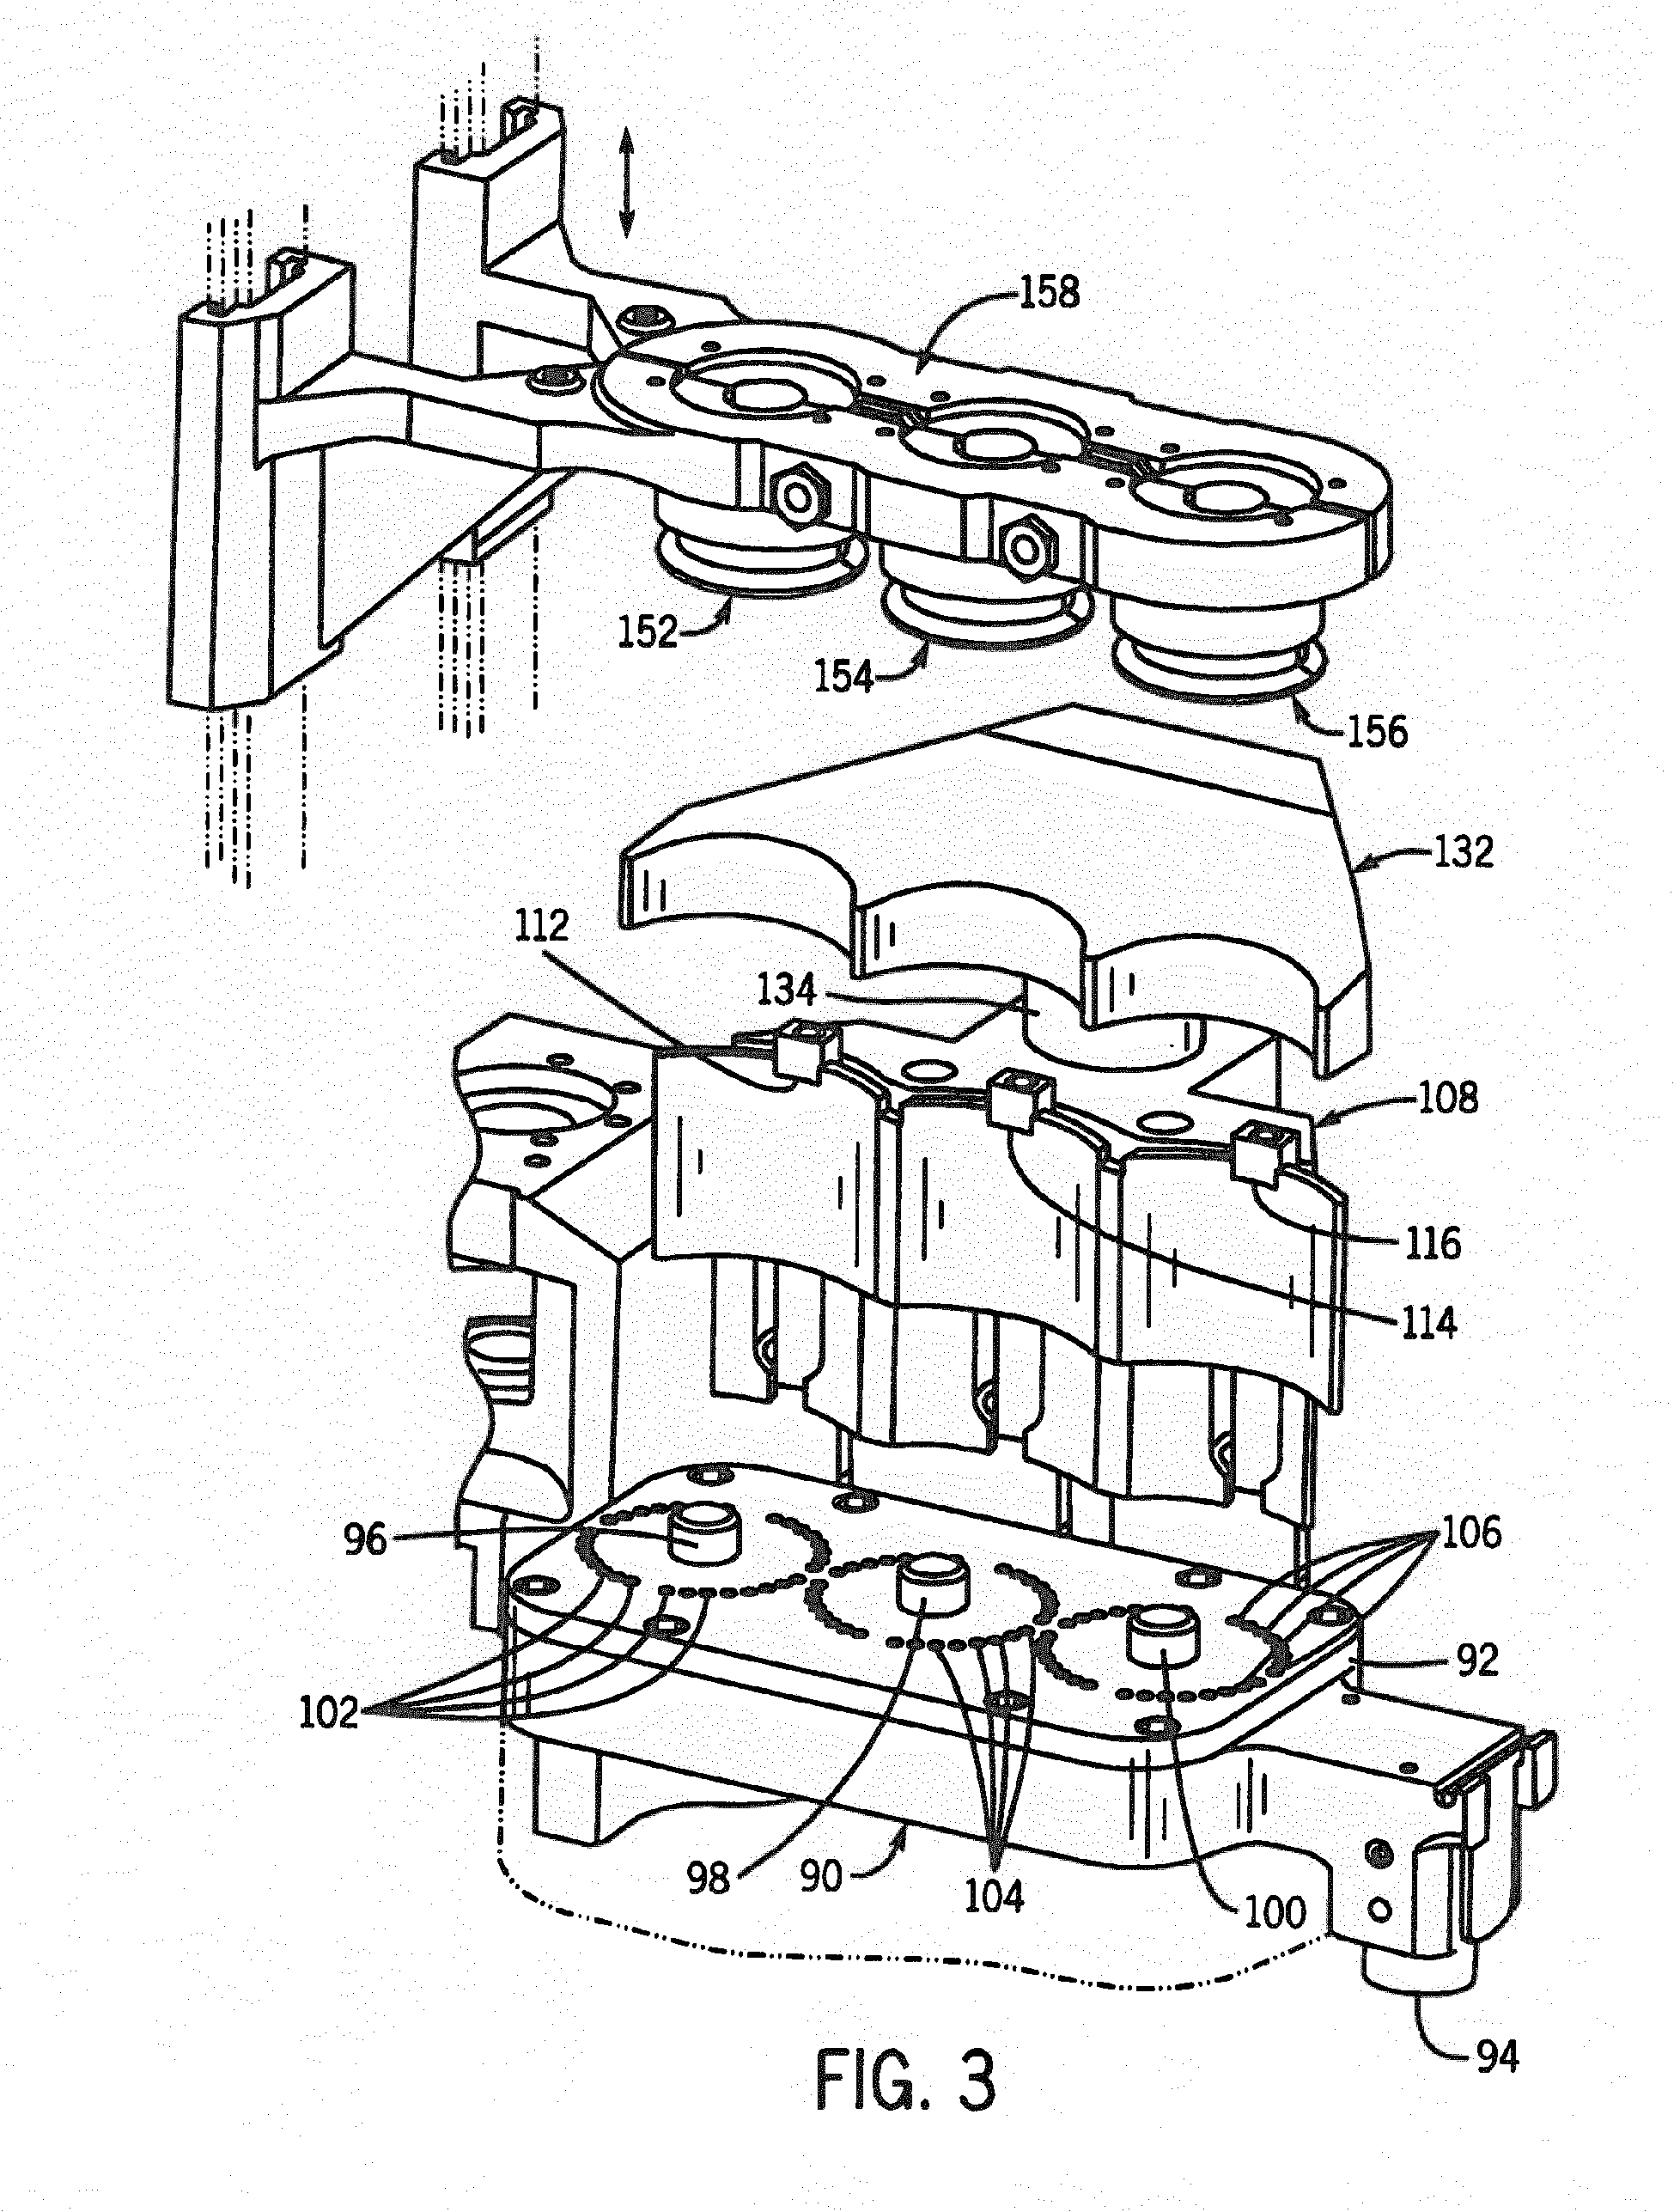 patent drawing - Lego City Airplane Coloring Pages